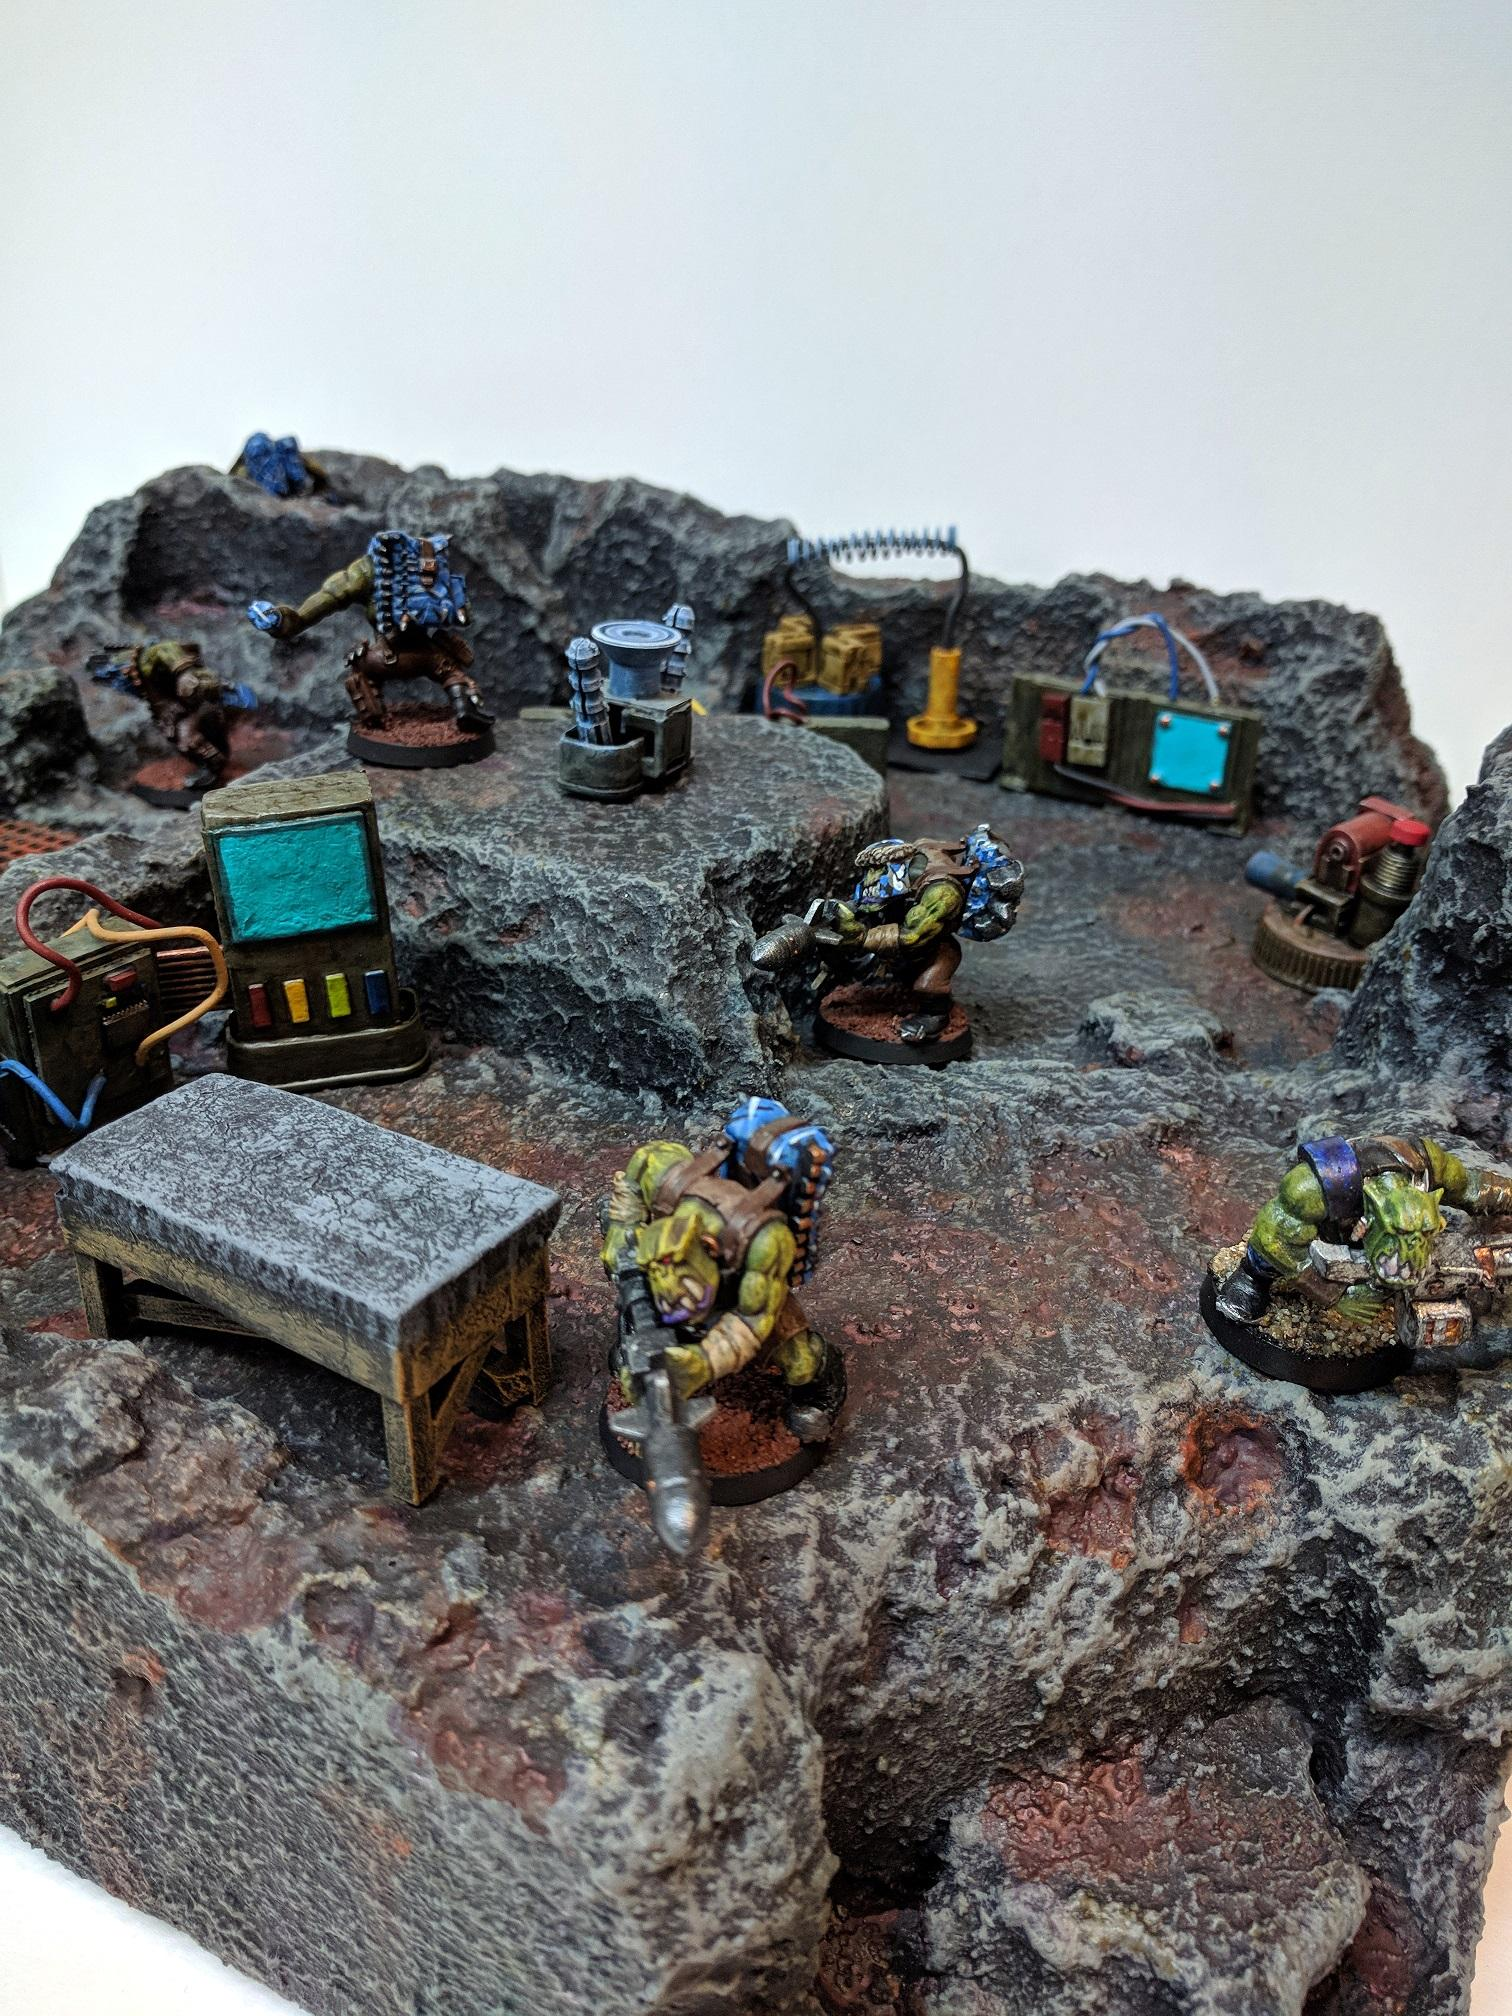 Kommando, Kommandoes, Orks, Rust, Scatter, Scratch Build, Terrain